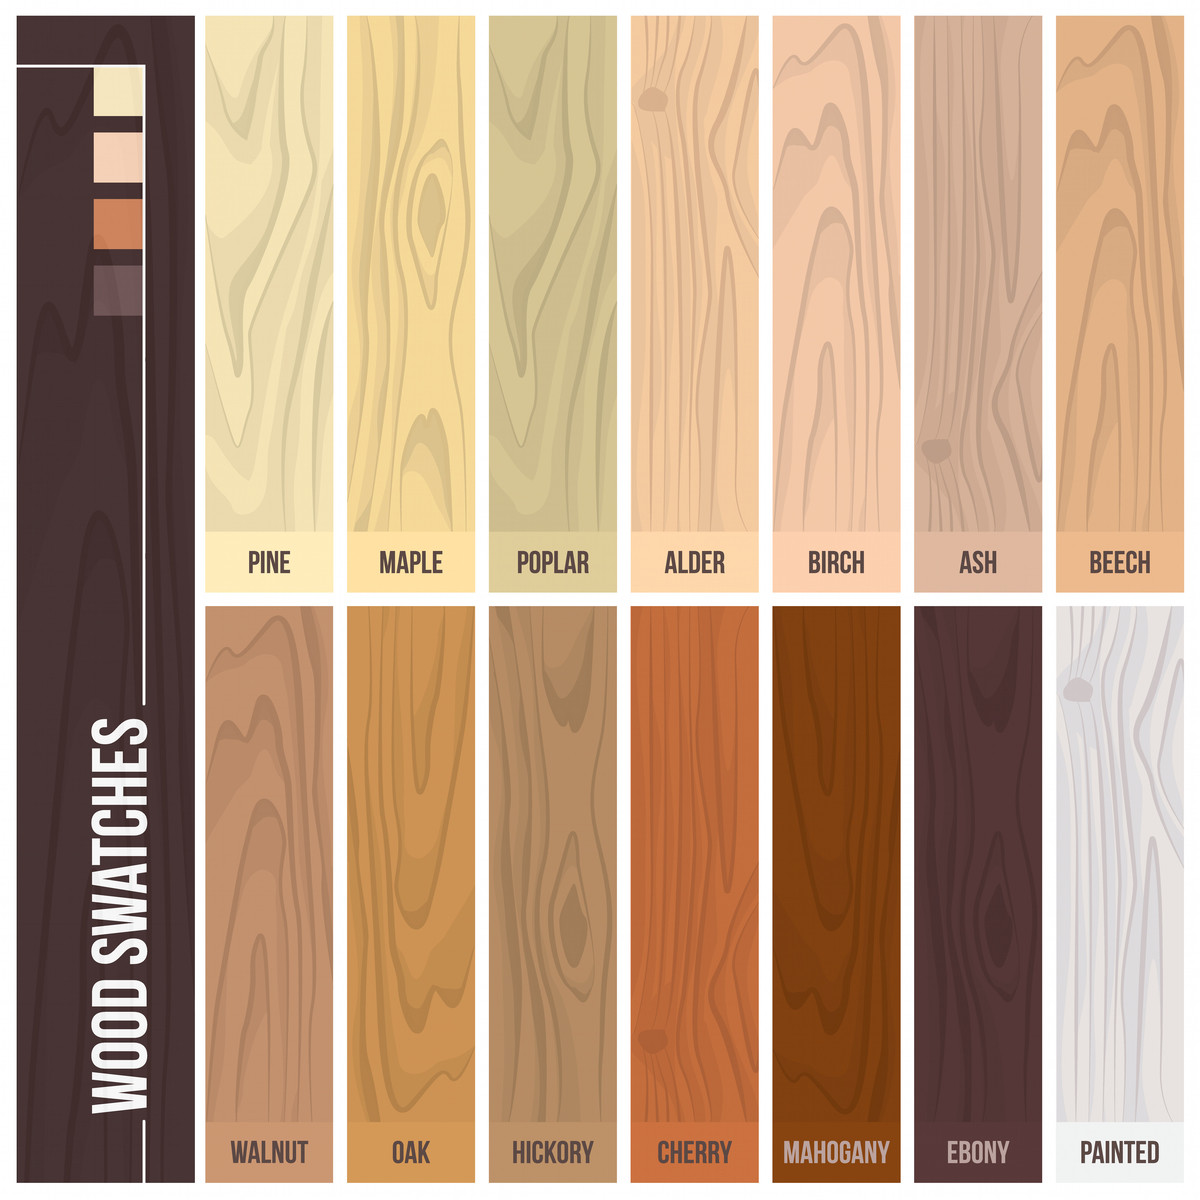 how hard to install hardwood floors of 12 types of hardwood flooring species styles edging dimensions pertaining to types of hardwood flooring illustrated guide